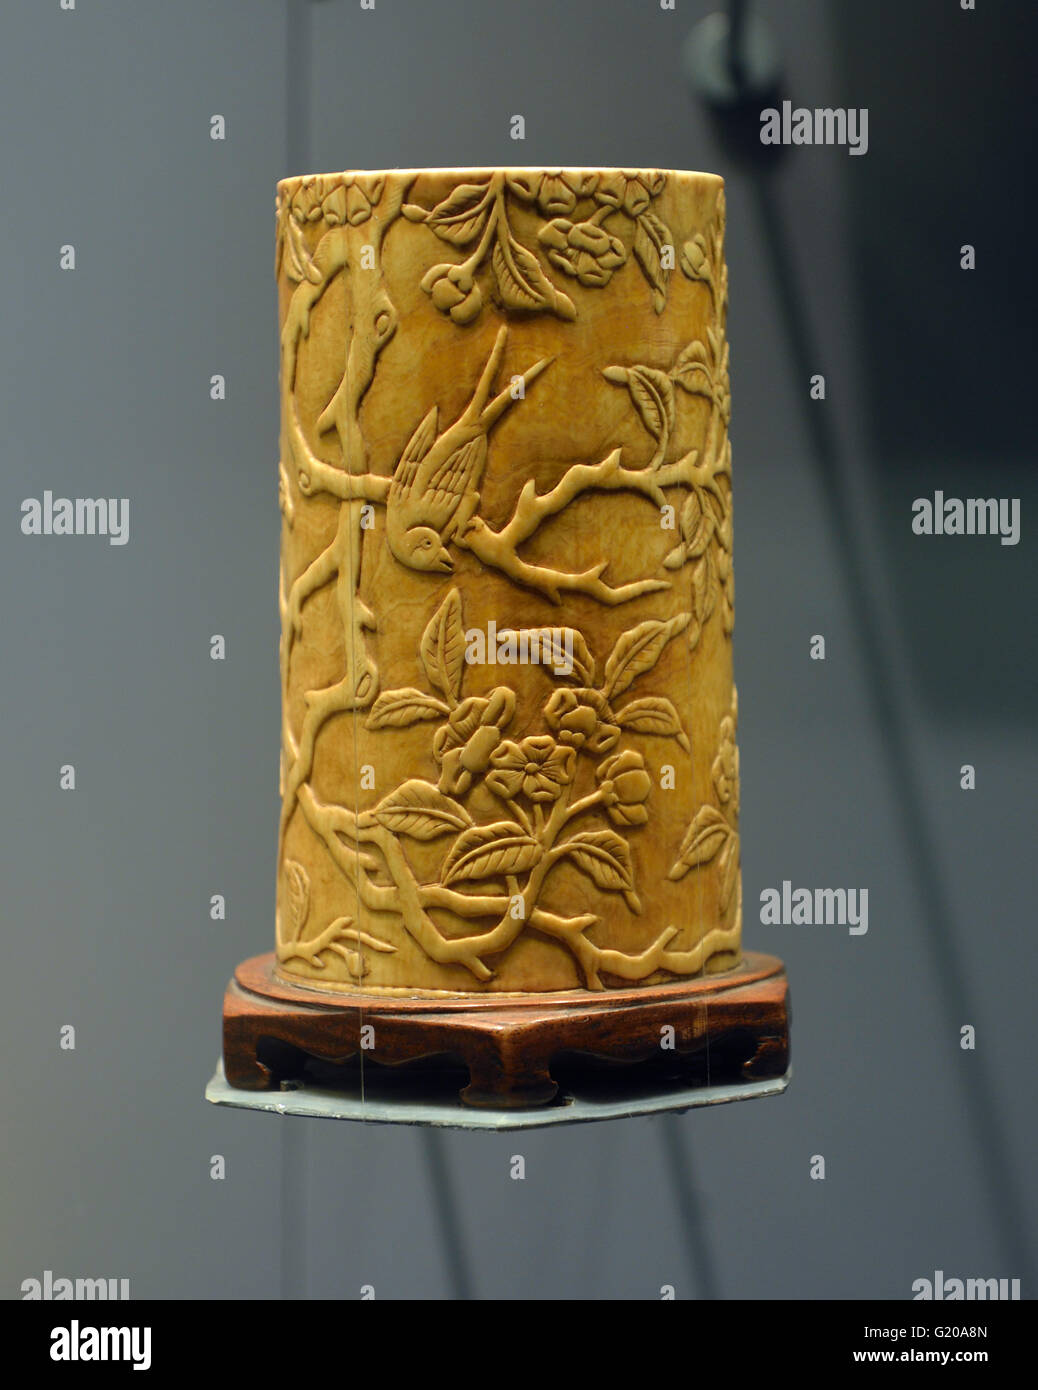 Ivory Chinese brushes holder. Ming Dynasty (1368 - 1644). Capital Museum, Beijing, China. - Stock Image